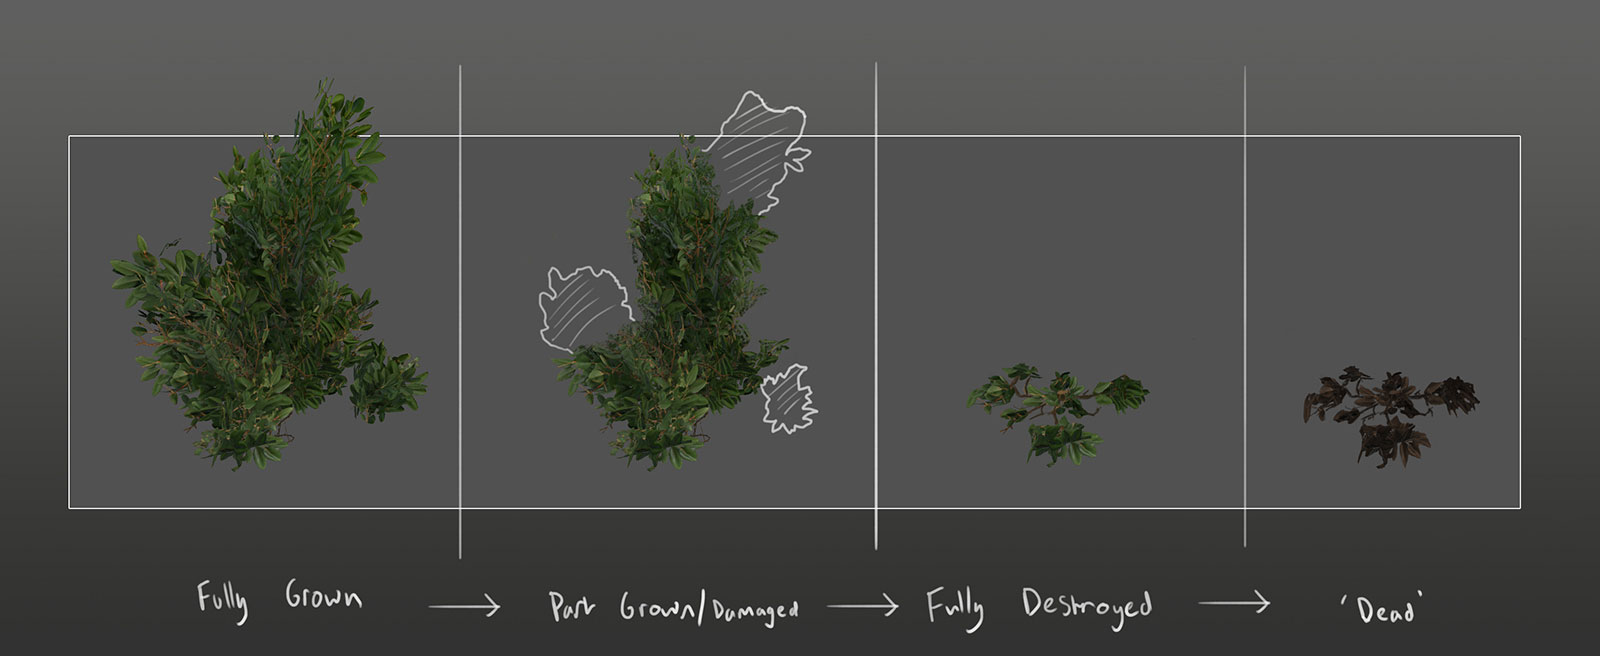 eden star bush concept damaged states